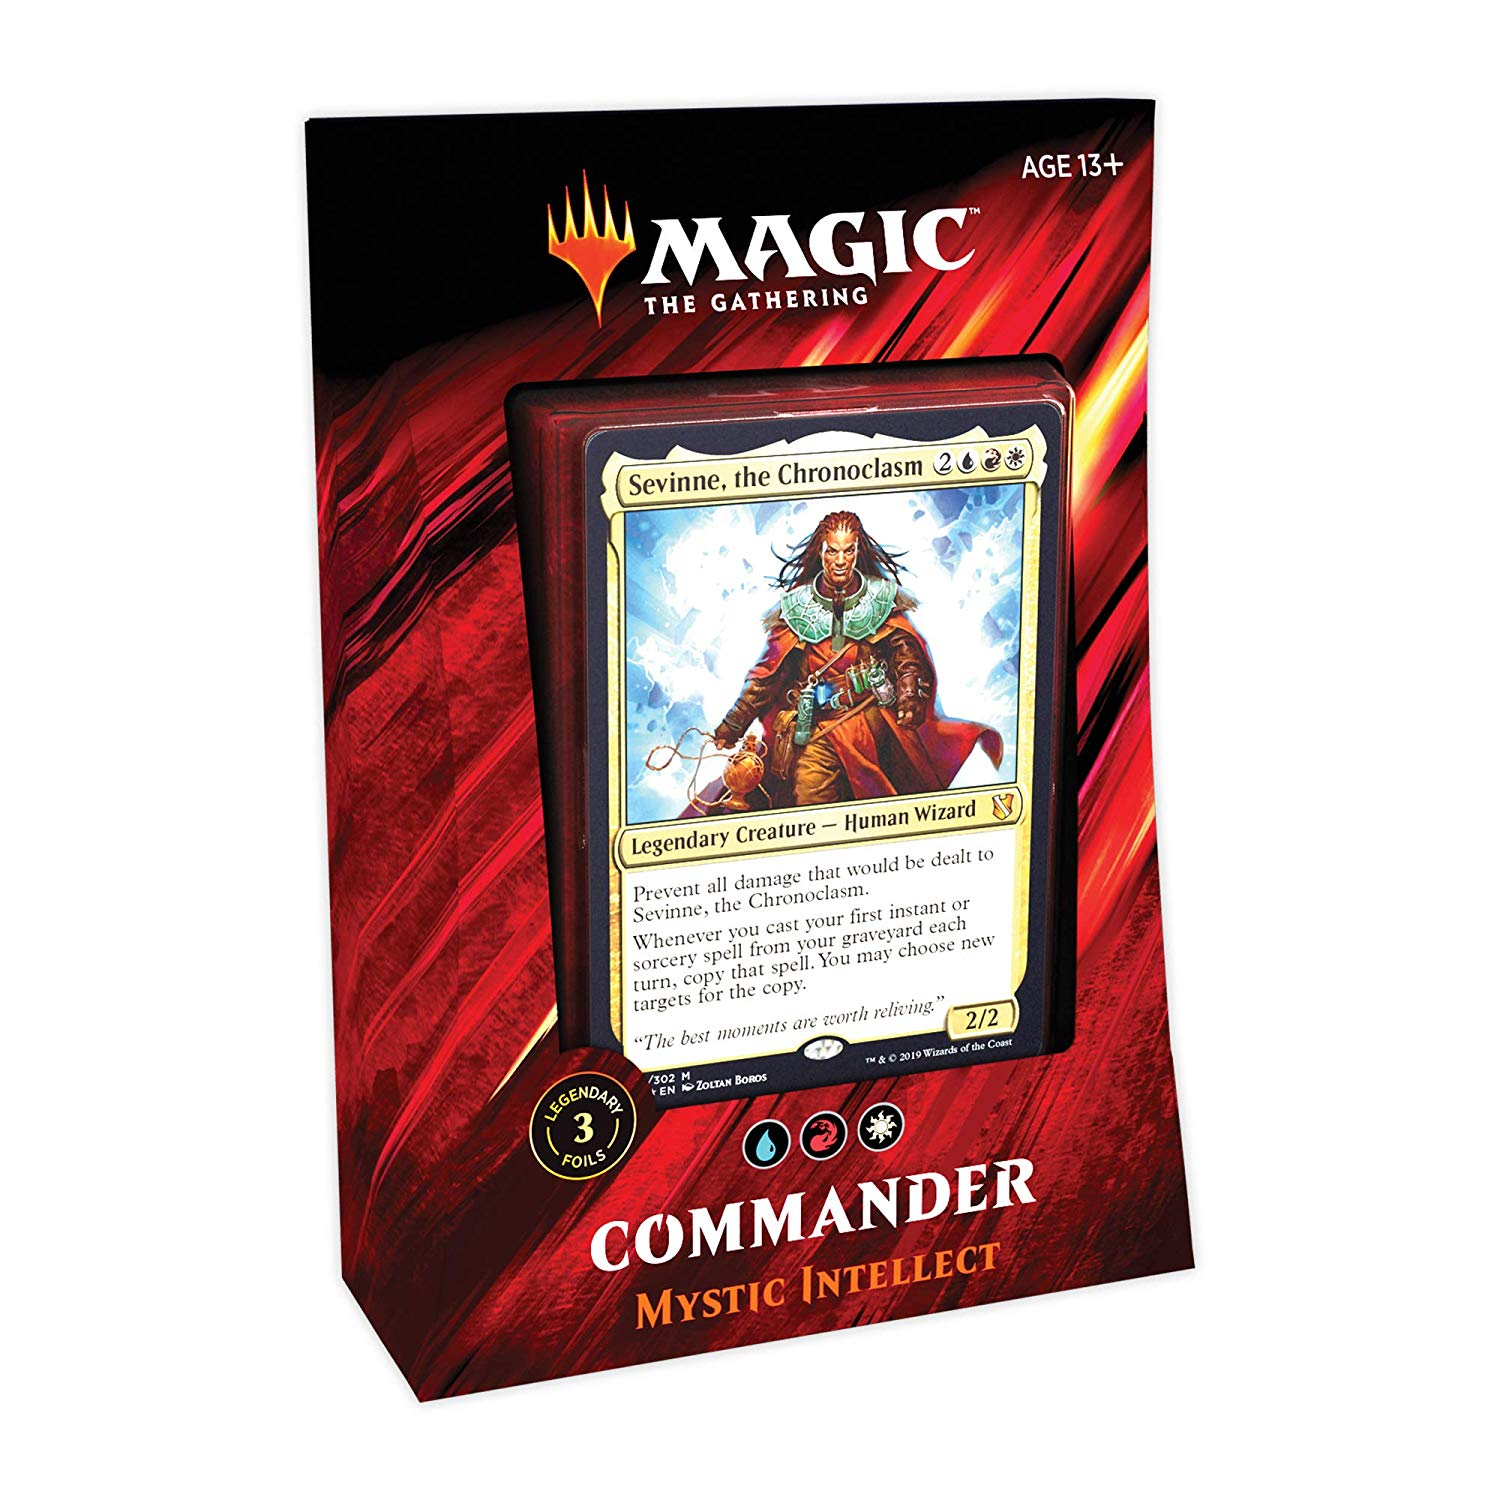 Commander 2019 Mystic Intellect - Precon Deck | Myrtle Beach Games & Comics